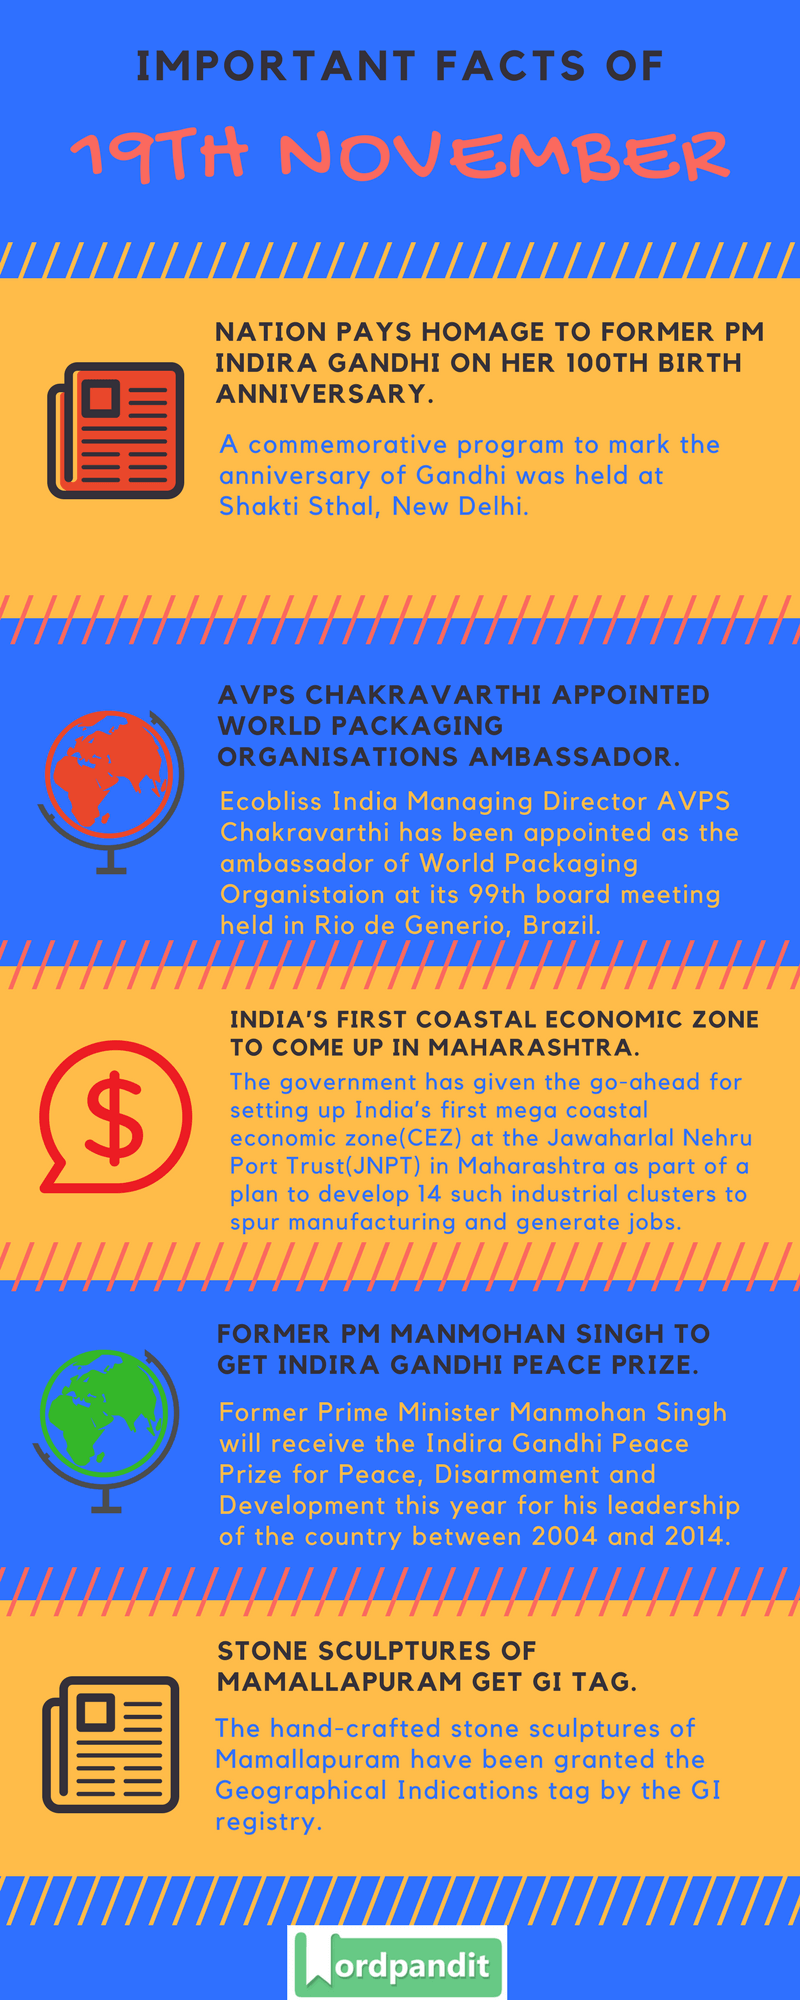 Daily-Current-Affairs-19-november-2017-Current-Affairs-Quiz-november-19-2017-Current-Affairs-Infographic